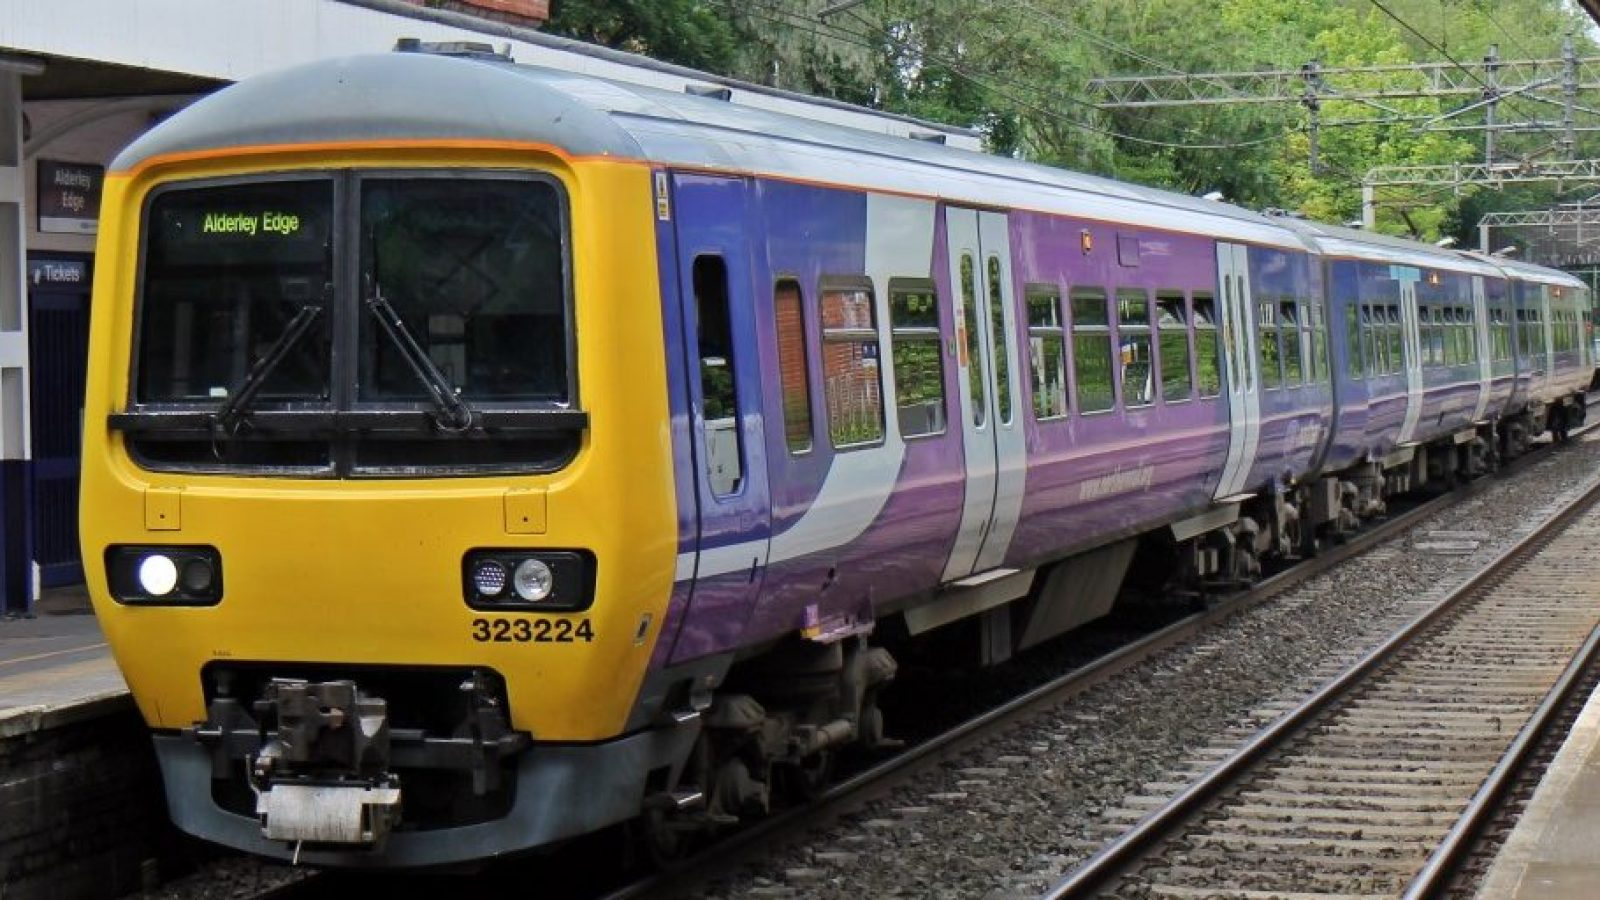 One of the current out-dated Northern trains, and below, one of the new models